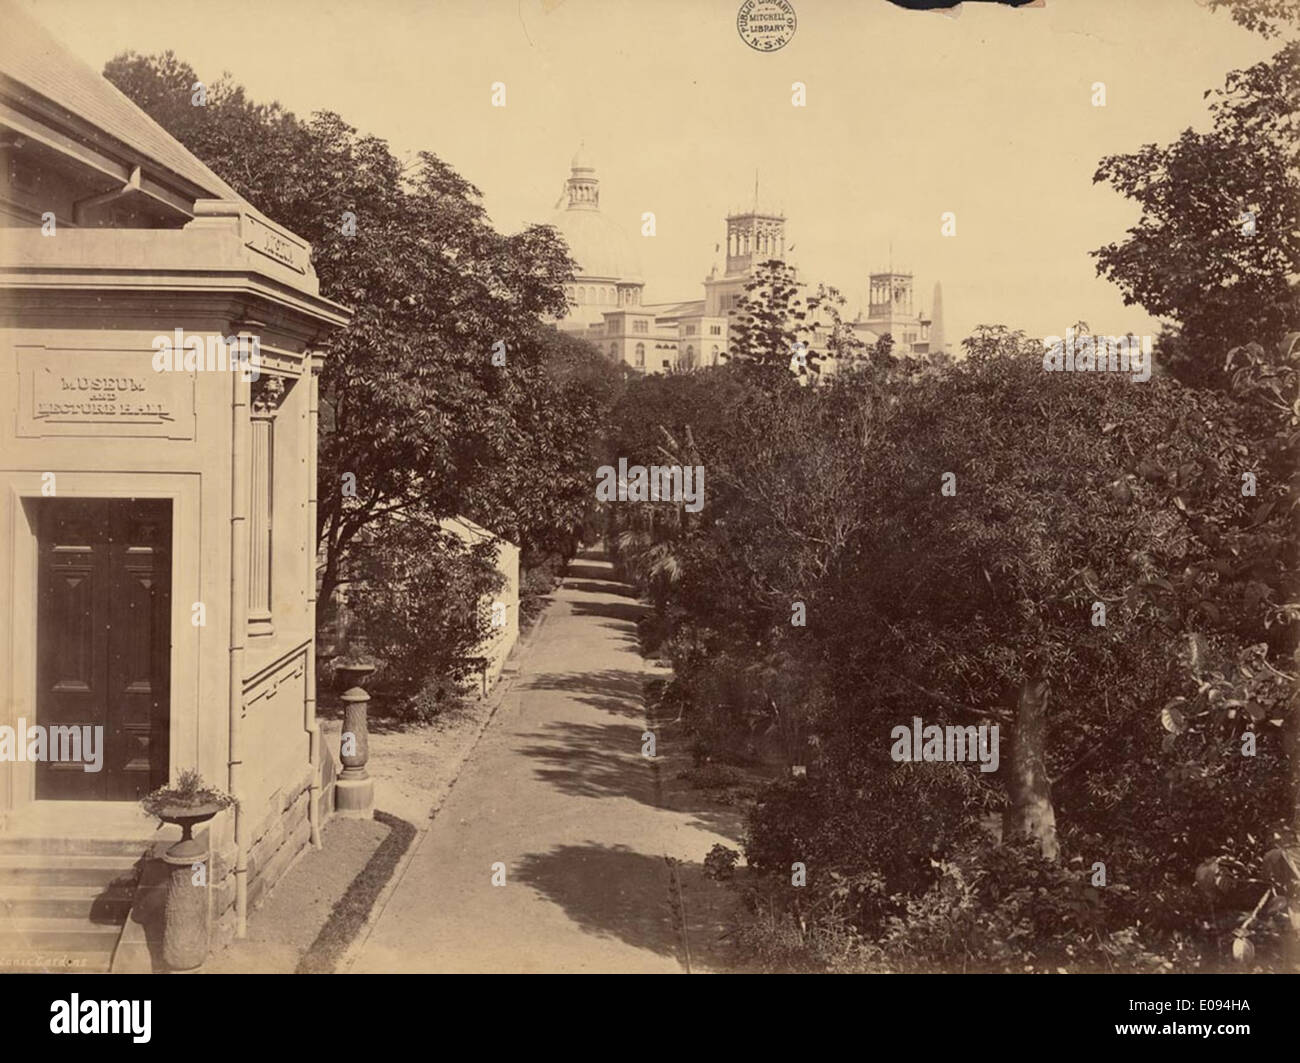 Botanic Gardens [Sydney / attributed to the New South Wales. Government Printing Office], 1879 Stock Photo